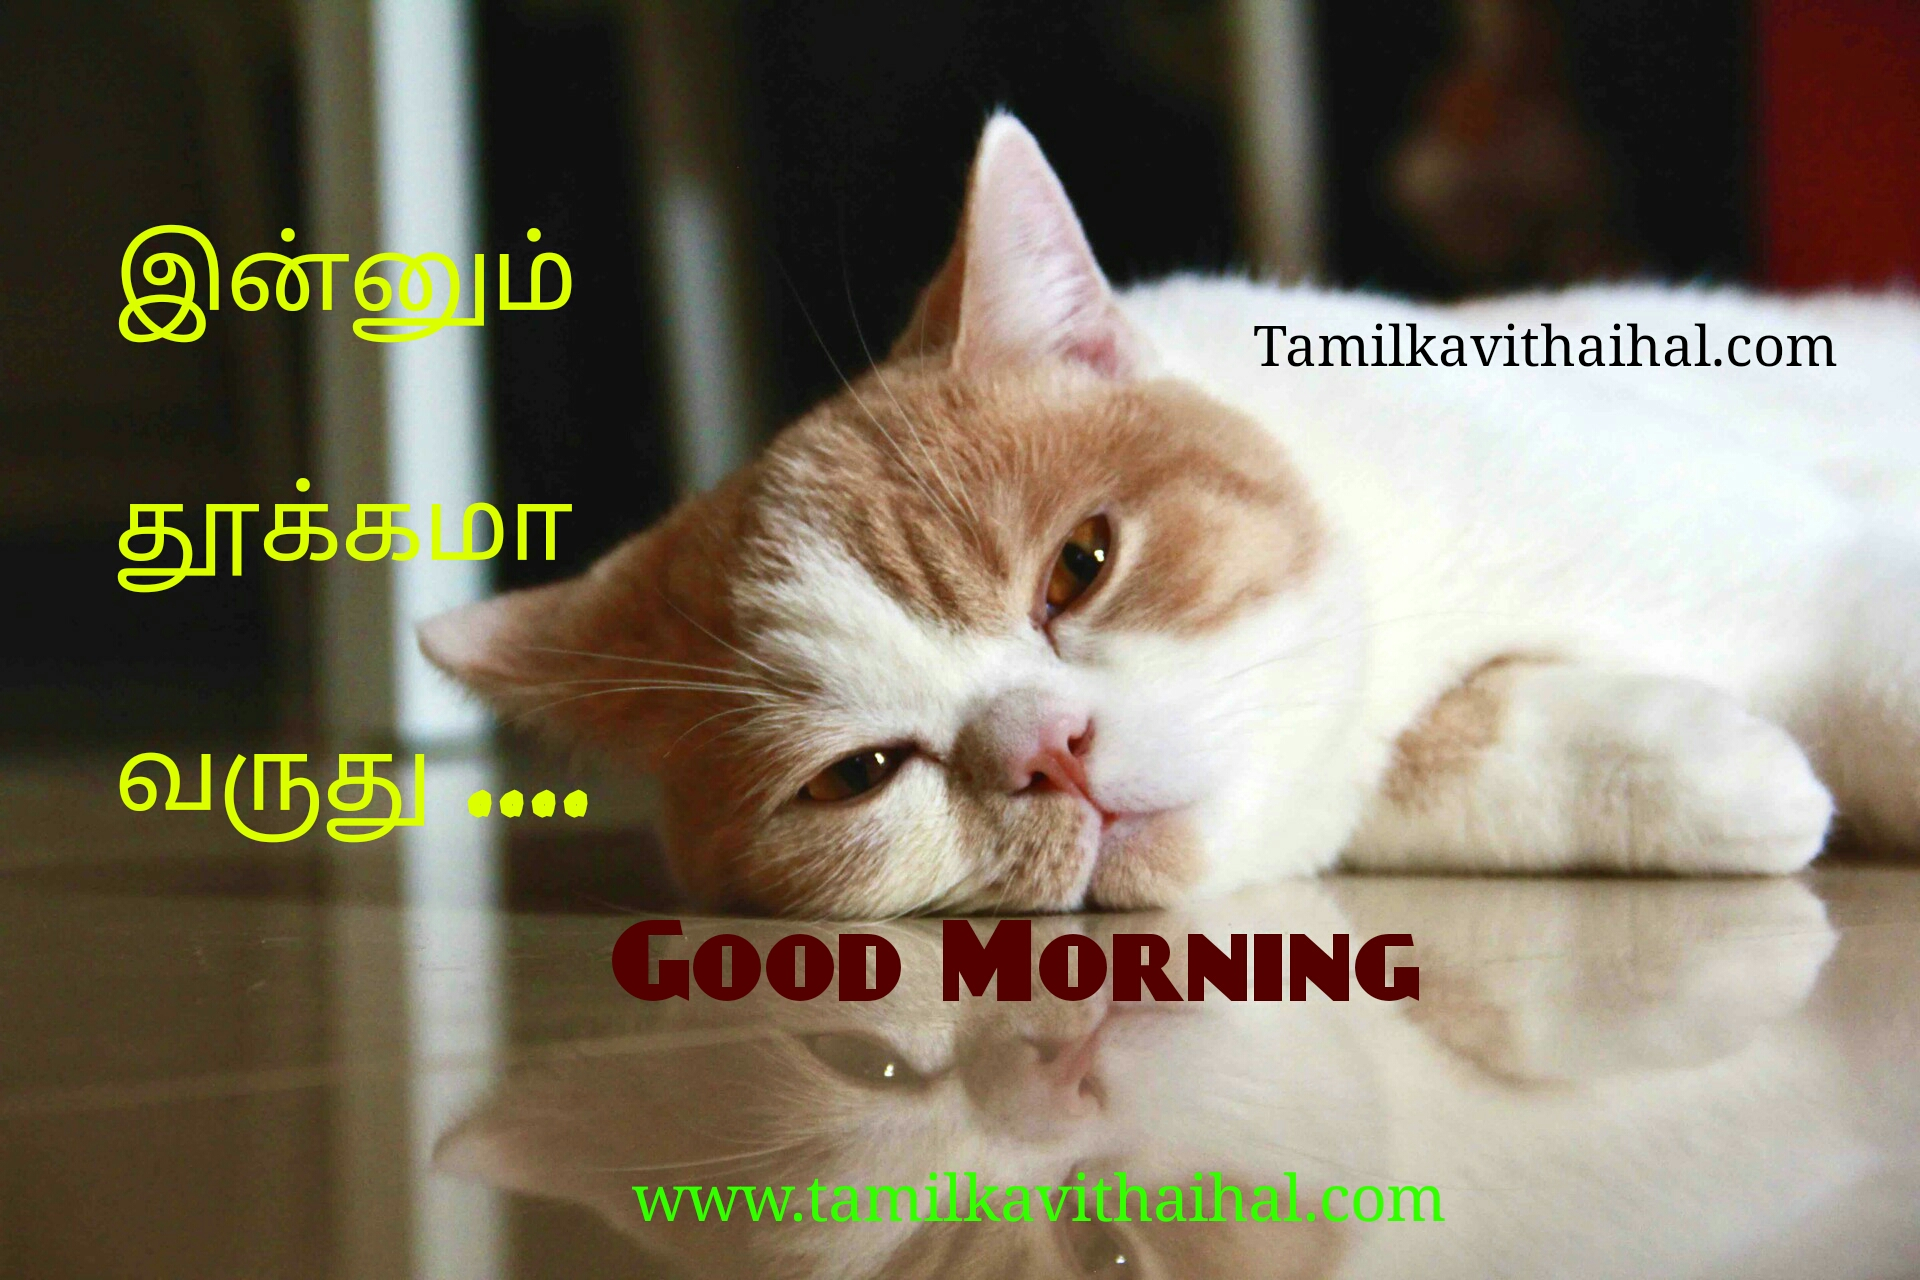 Best quotes for gud mrg wishes kalai vanakkam valthukkal msg download